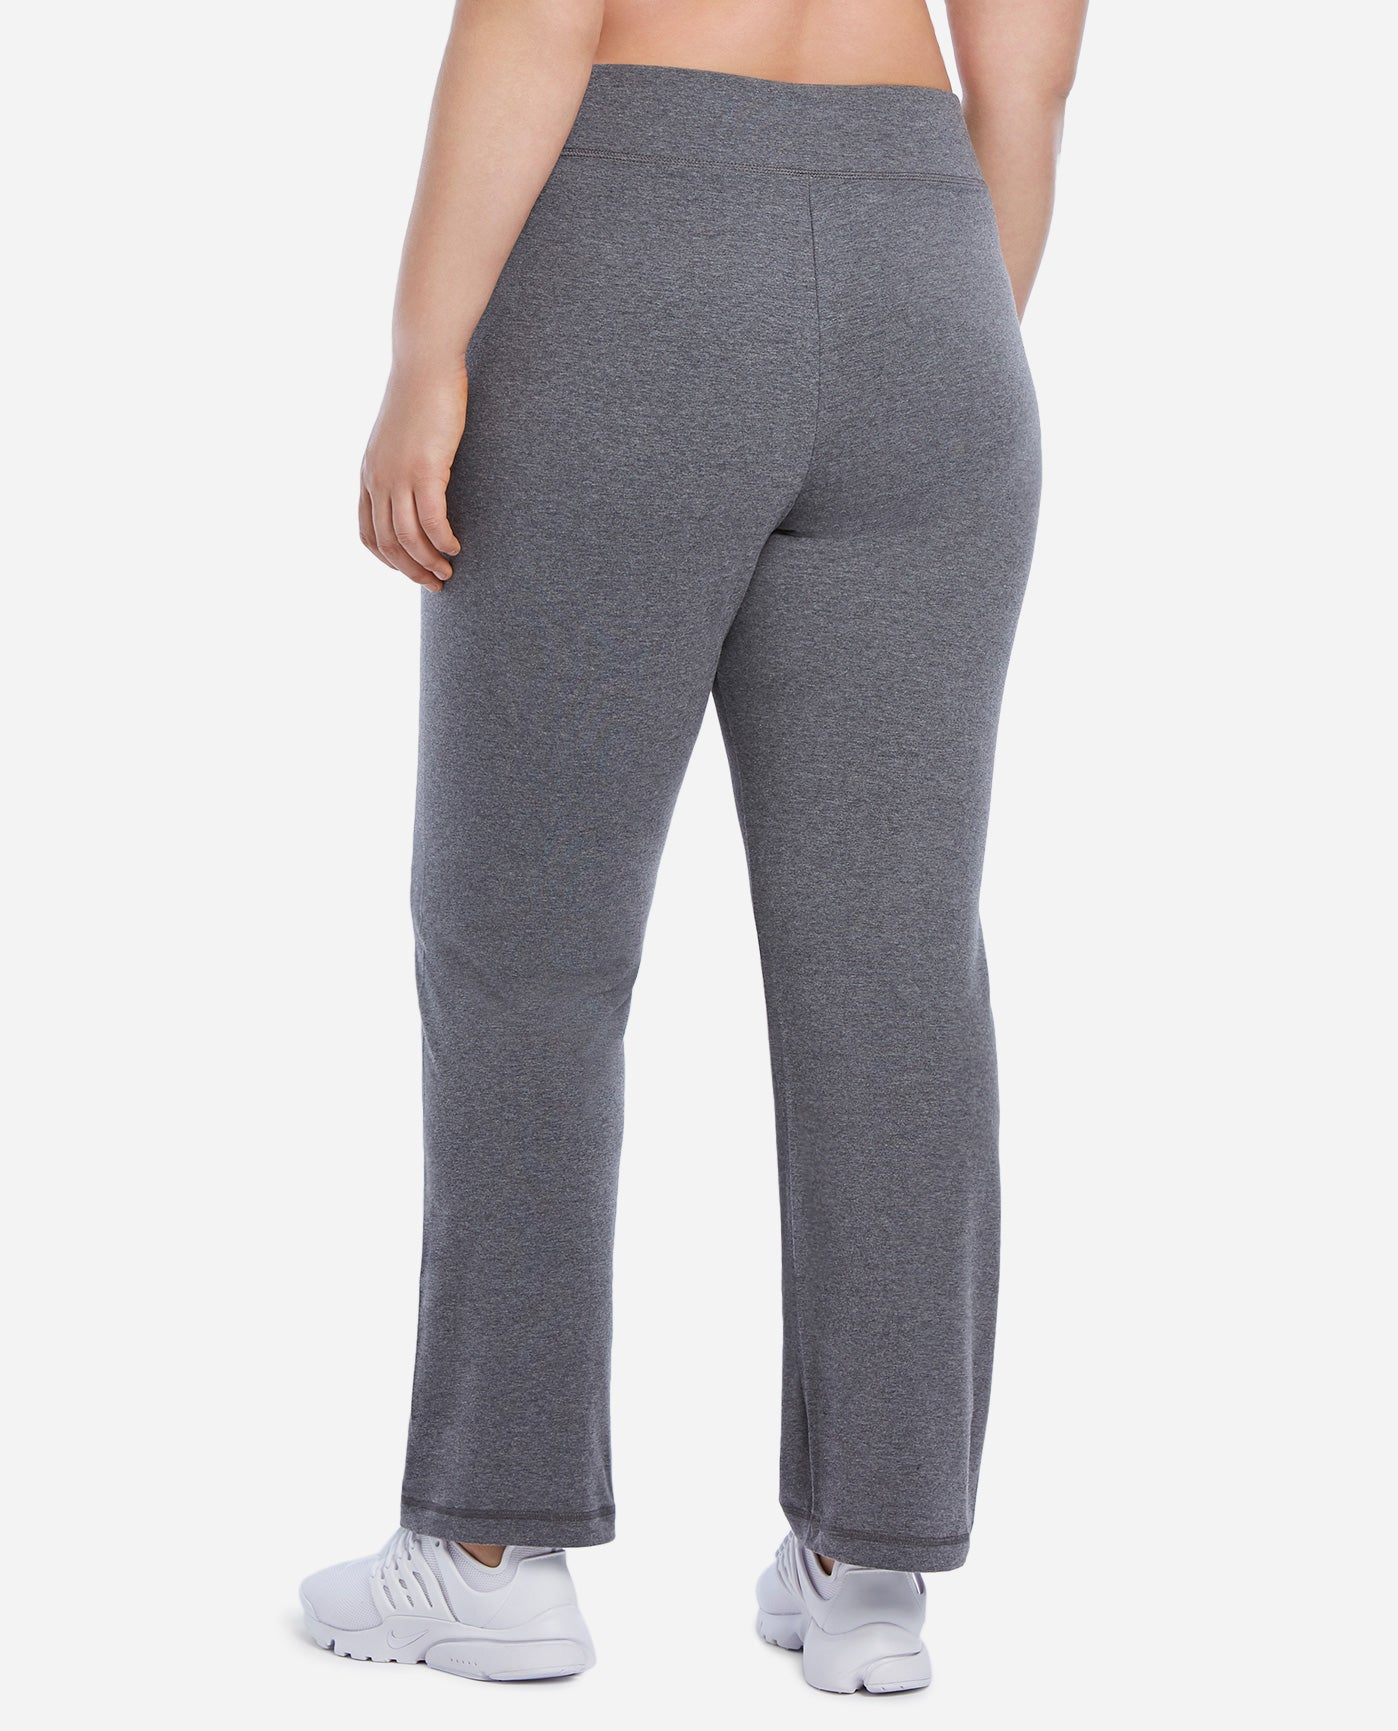 Women S Essentials Yoga Pant Womens Pants Danskin